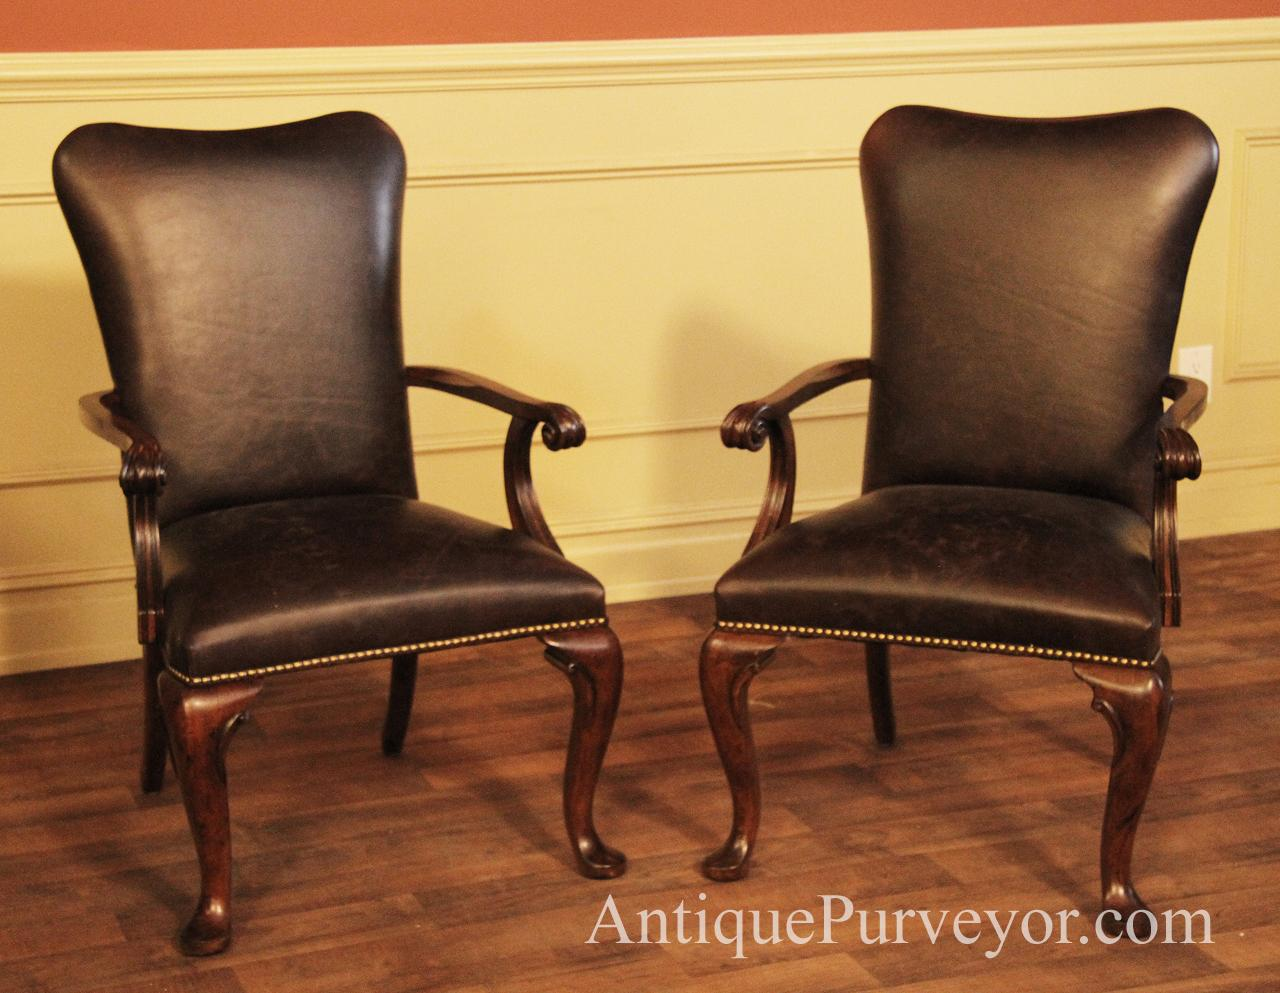 Queen Anne Leather Arm Chairs with Camel Back and Brass Nail Trim & Leather Upholstered Dining Room Arm Chairs with Queen Anne Feet